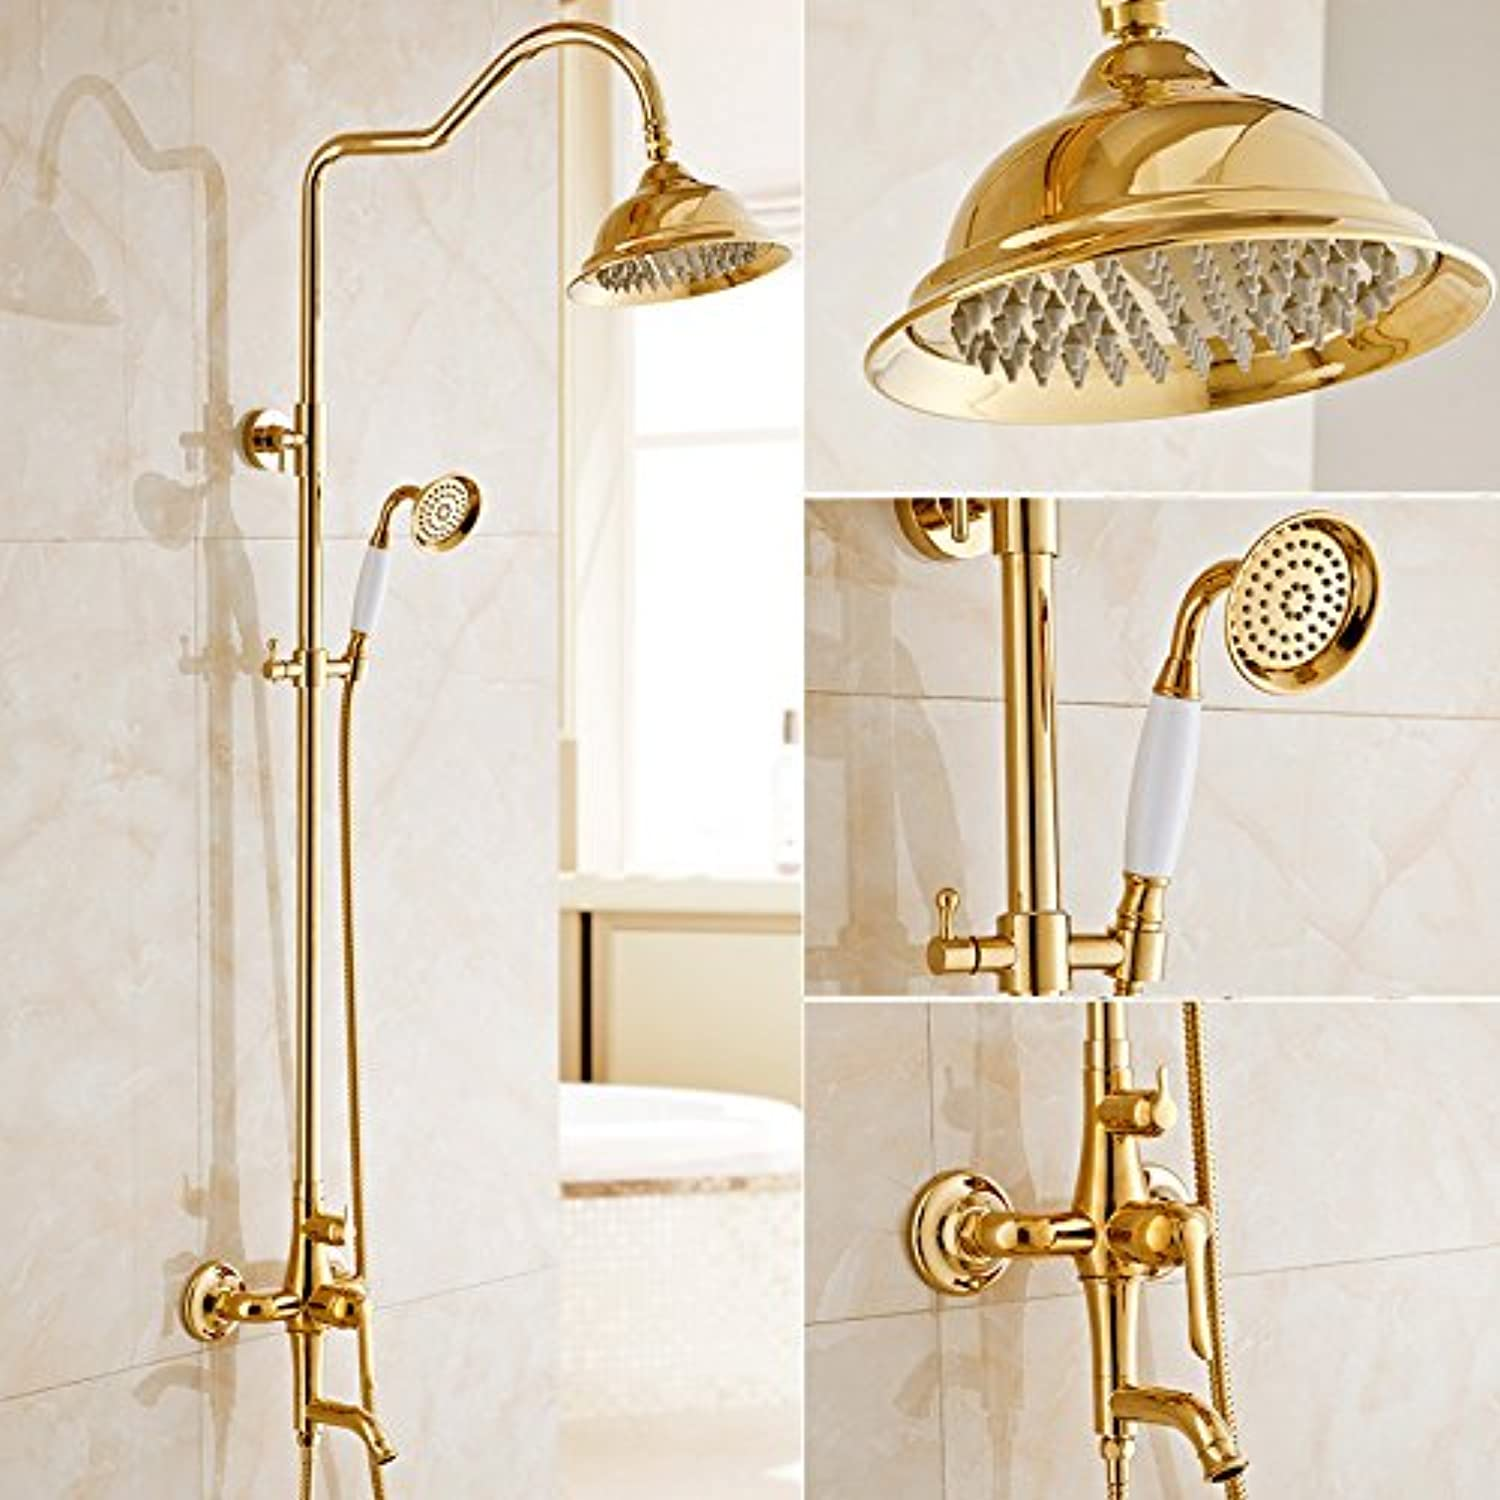 AiRobin-Continental Luxury gold Plated Brass Rain Shower System,C